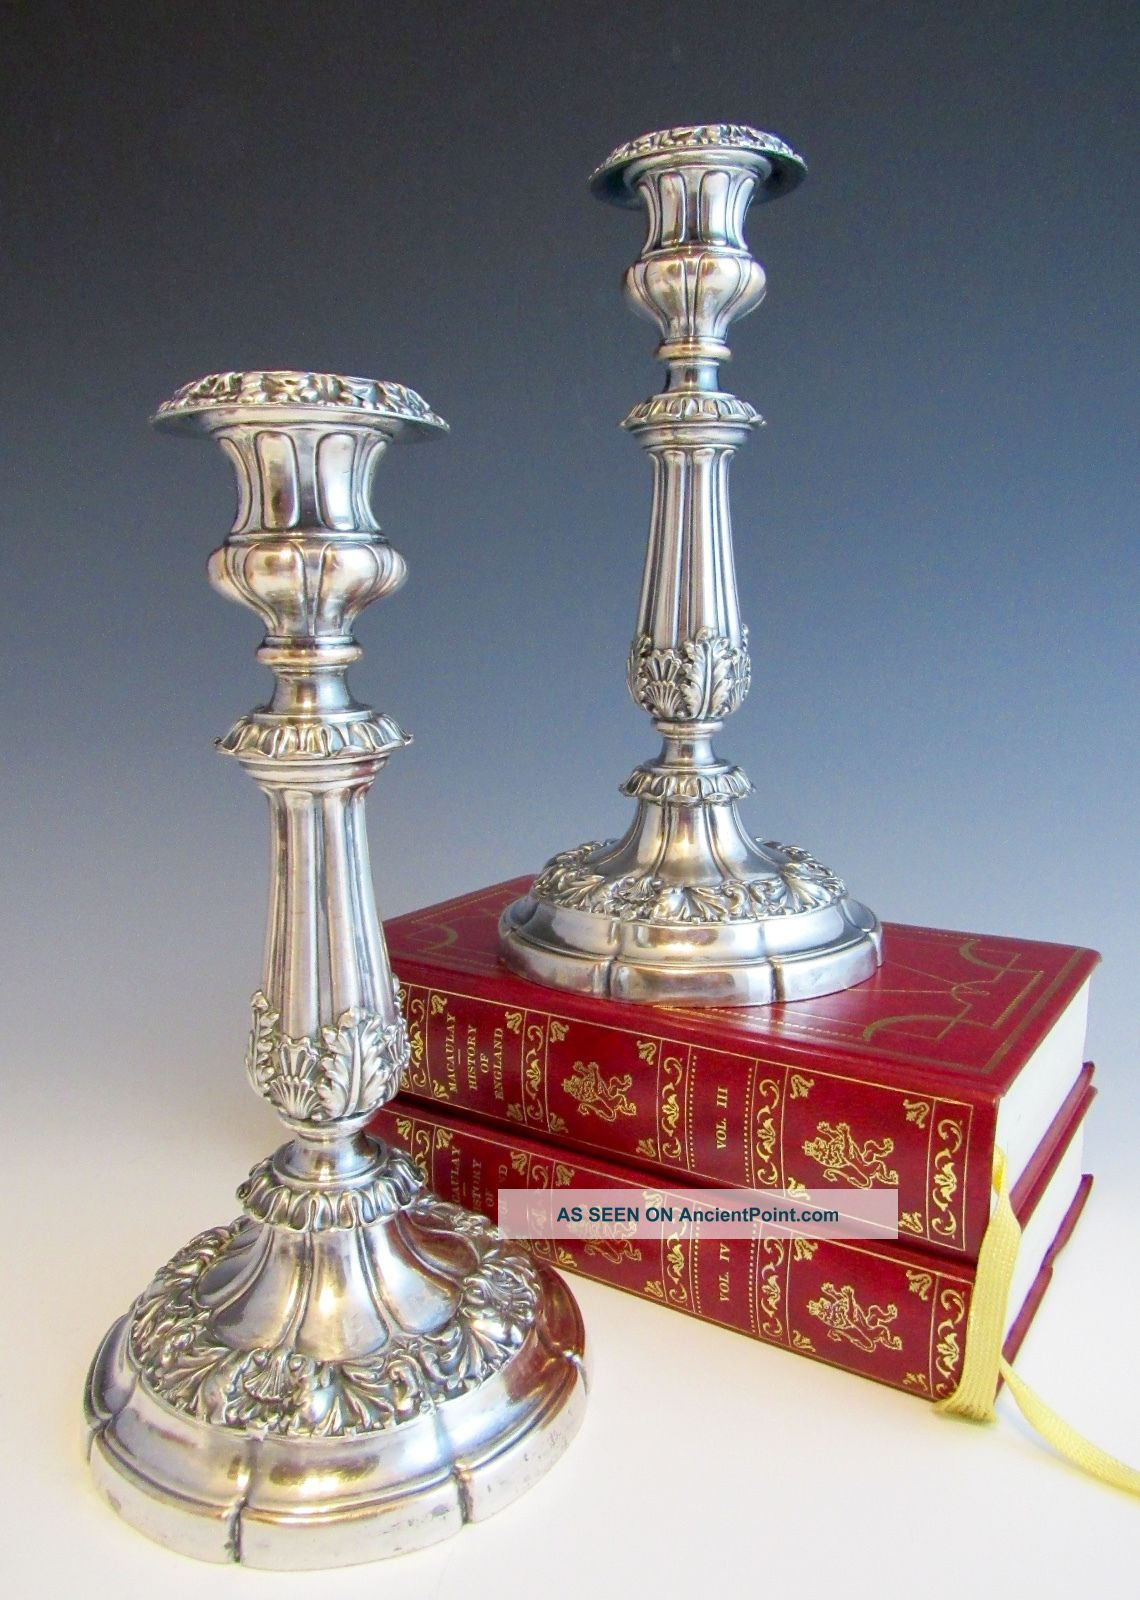 Pair Antique Old Sheffield Silverplate Early 19th Century Candlesticks Silver Candlesticks & Candelabra photo